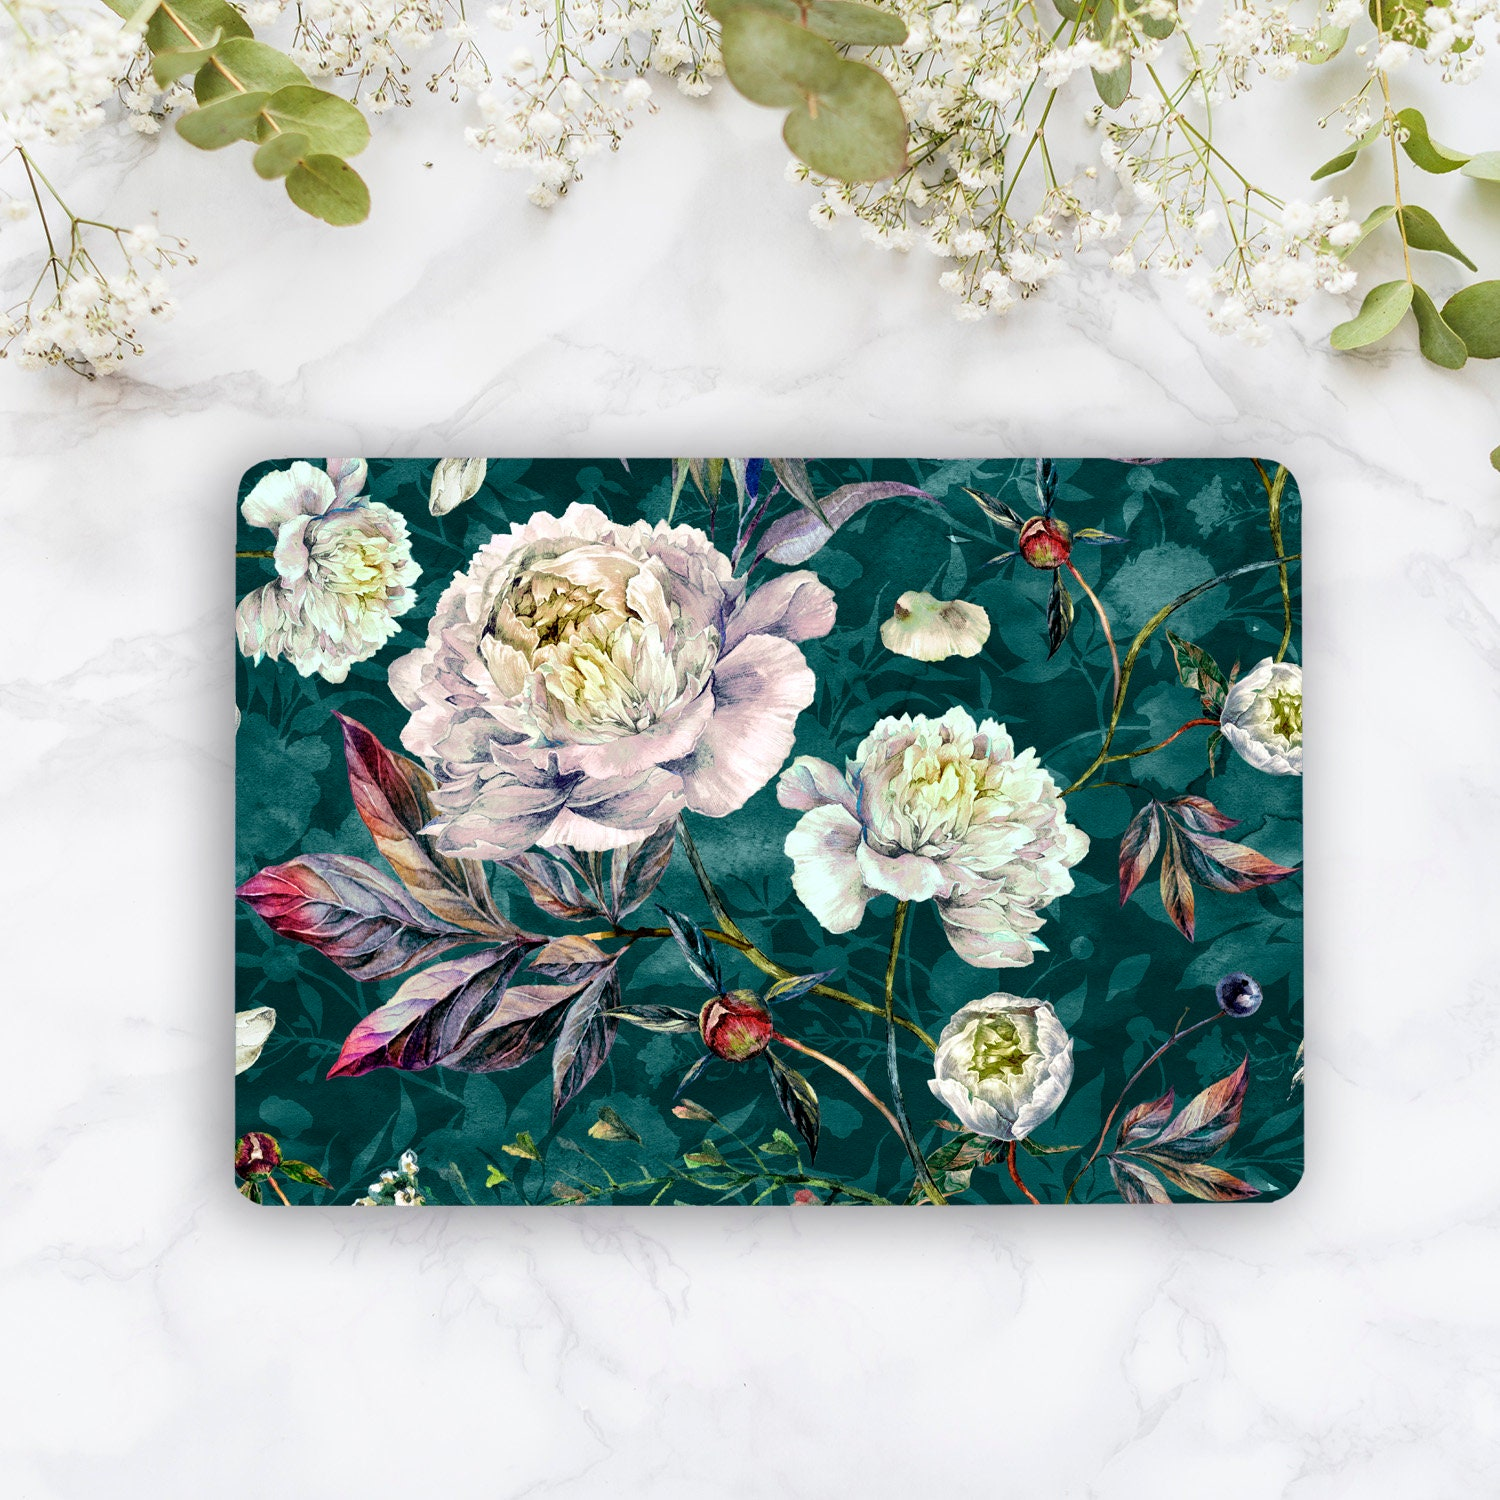 Floral Laptop Skin Flowers Notebook Vinyl Decal Dell Hp Lenovo Asus Acer Laptop Sticker Decal Skin Cover Skins For Any Laptop Stickers MB310